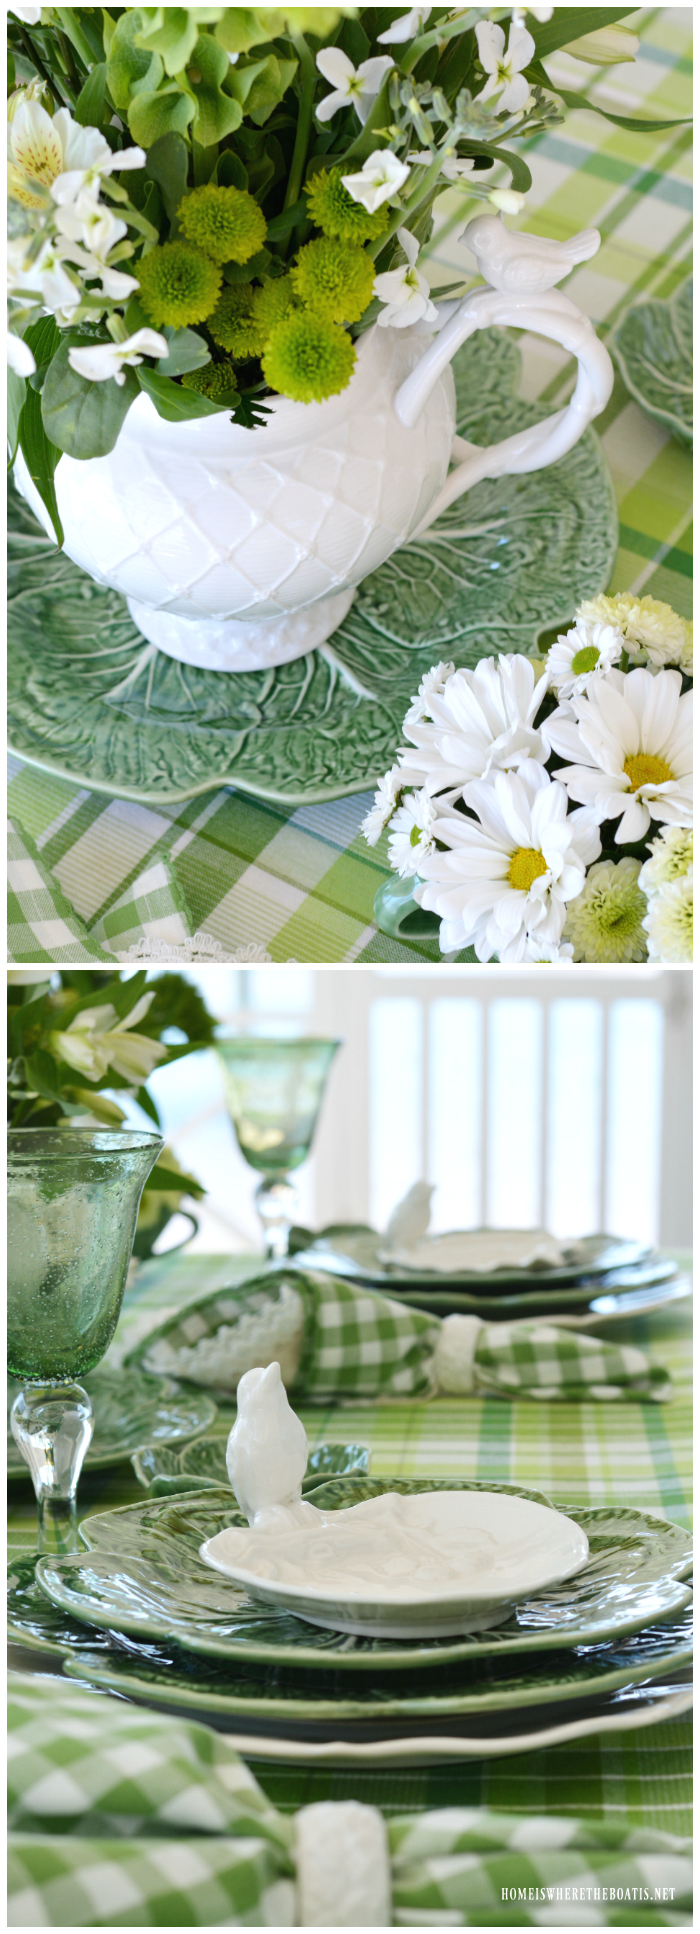 St. Patrick's Day Table with Inspiration from an Irish Blessing | ©homeiswheretheboatis.net #stpatricksday #tablescapes